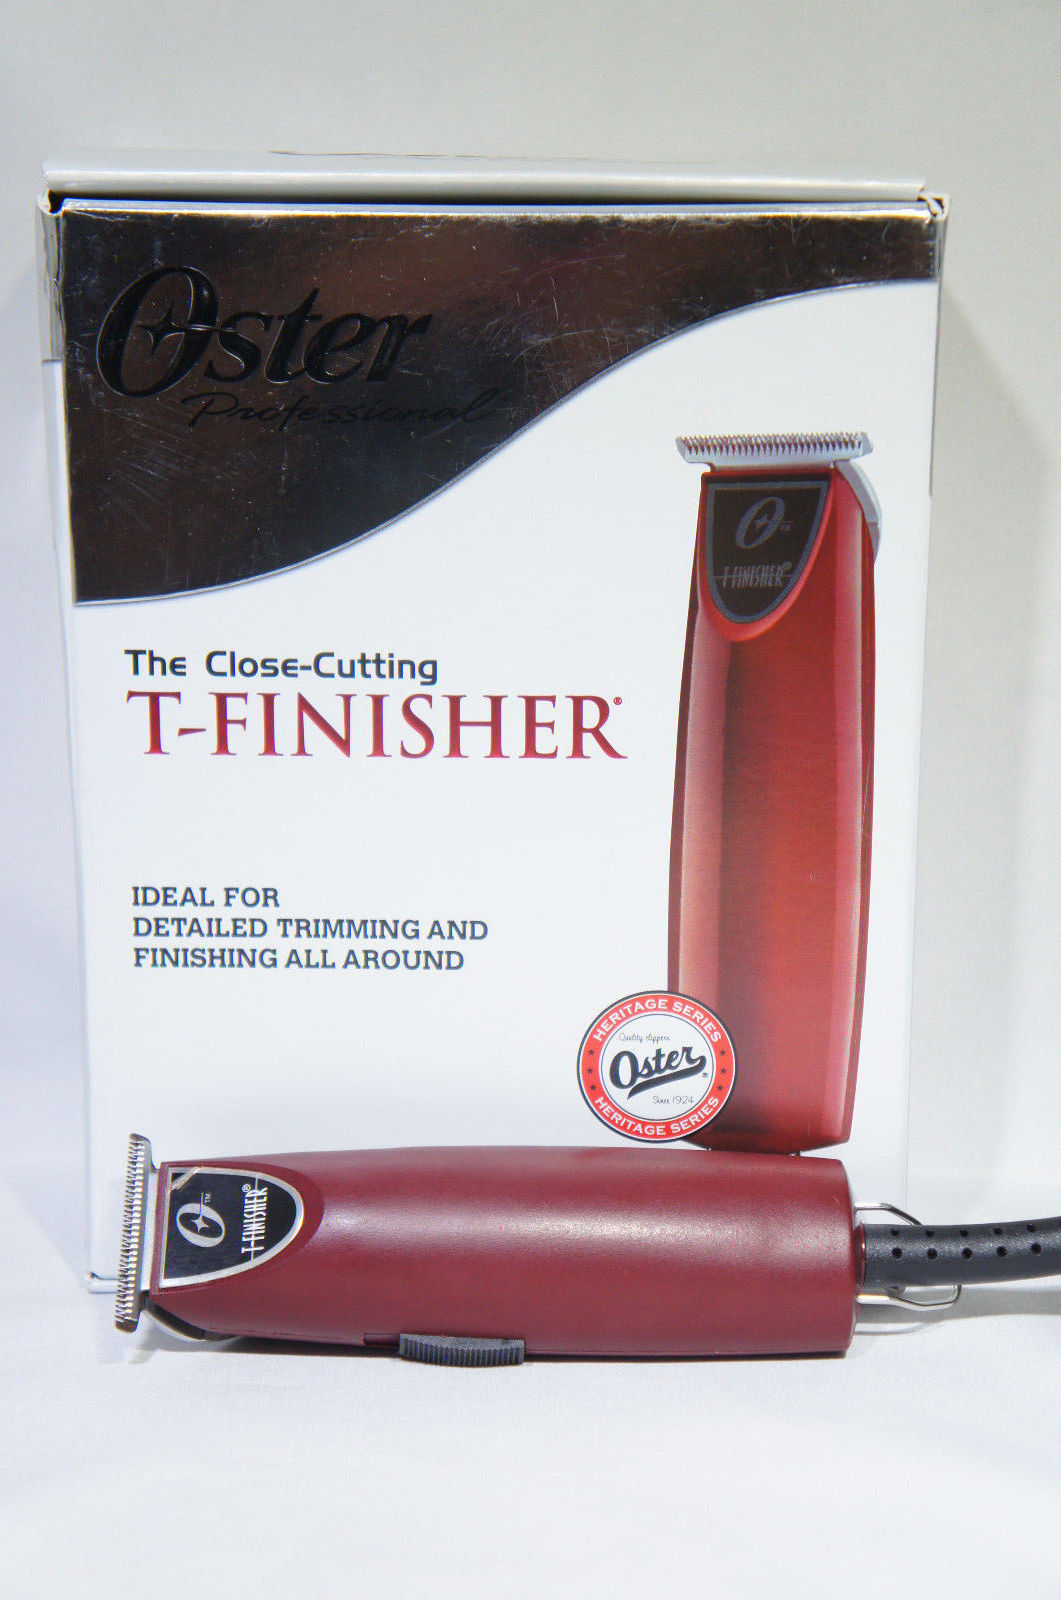 Oster 76059-010 Ac T-finisher Trimmer (Like New)